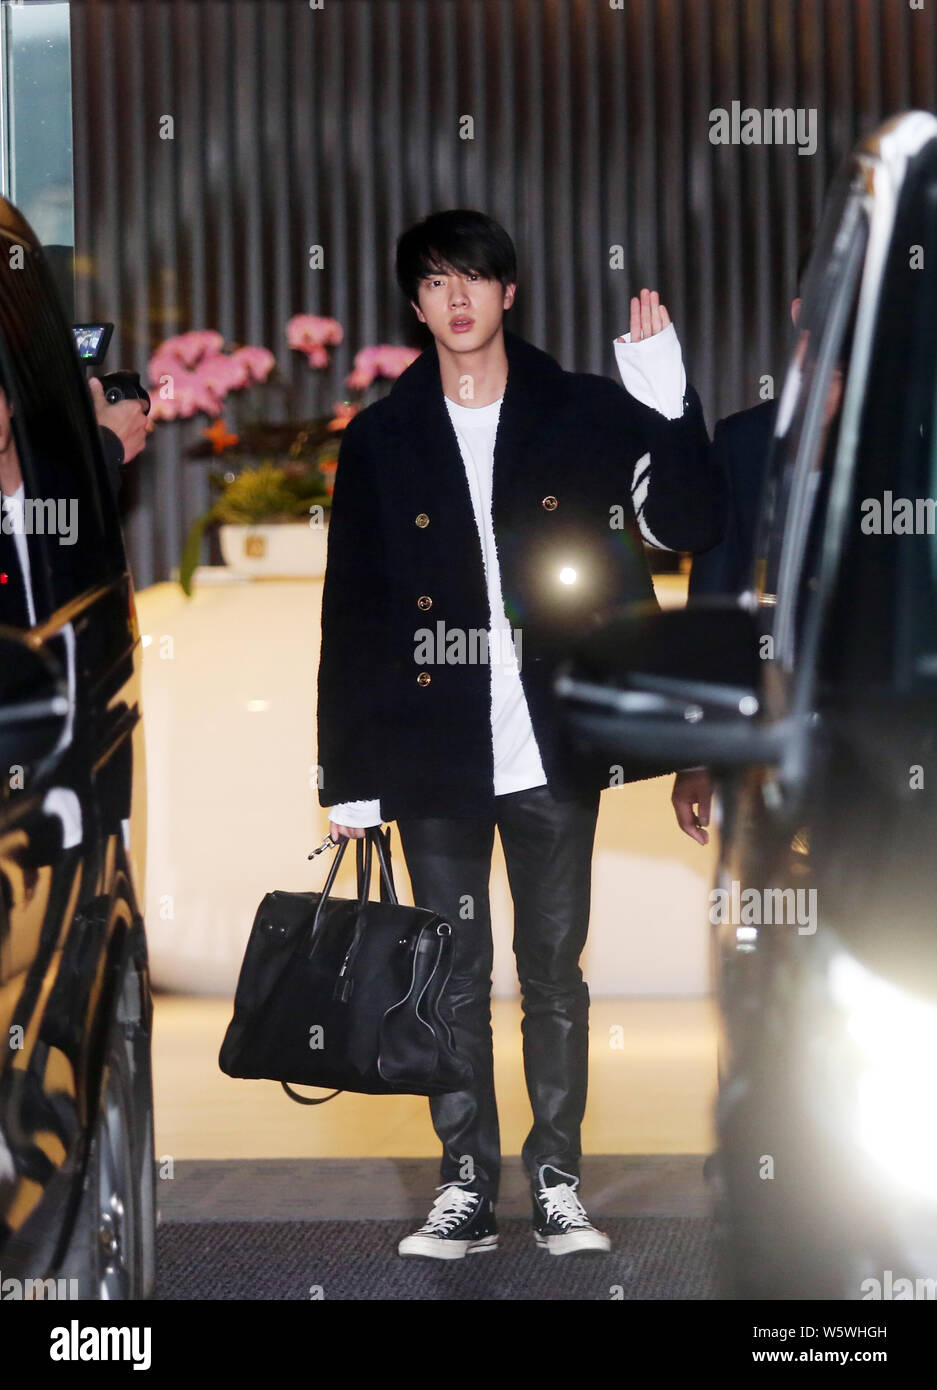 Jin Of South Korean Boy Band Bts Also Known As The Bangtan Boys Arrives At An Airport For The Bts World Tour Love Yourself Tour Concert In Taipei Stock Photo Alamy